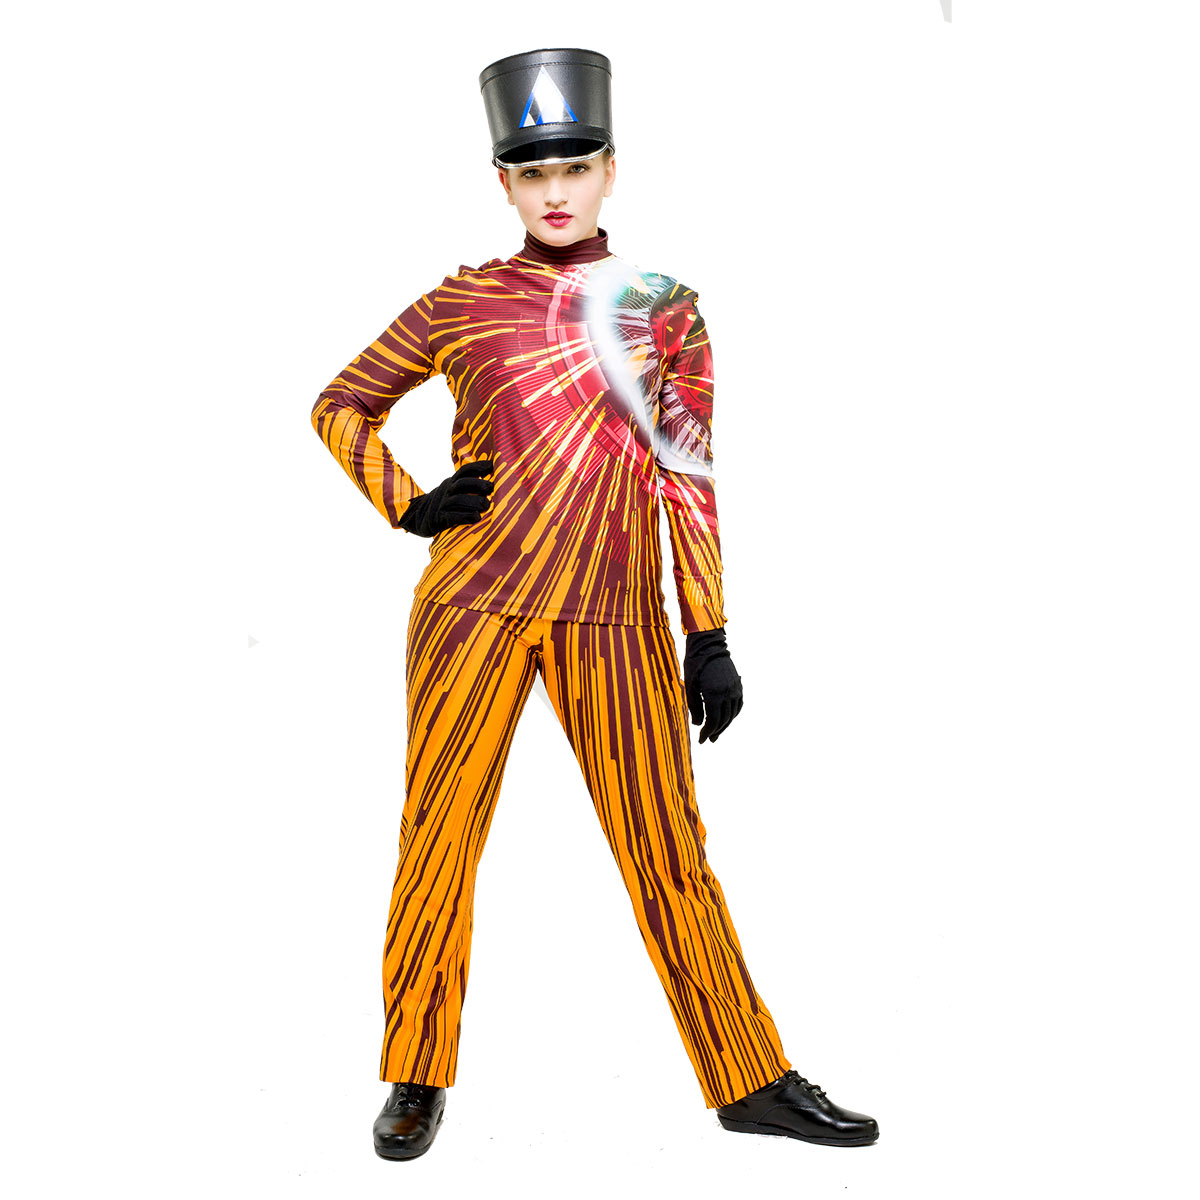 Digital Band Uniforms: Style 1815